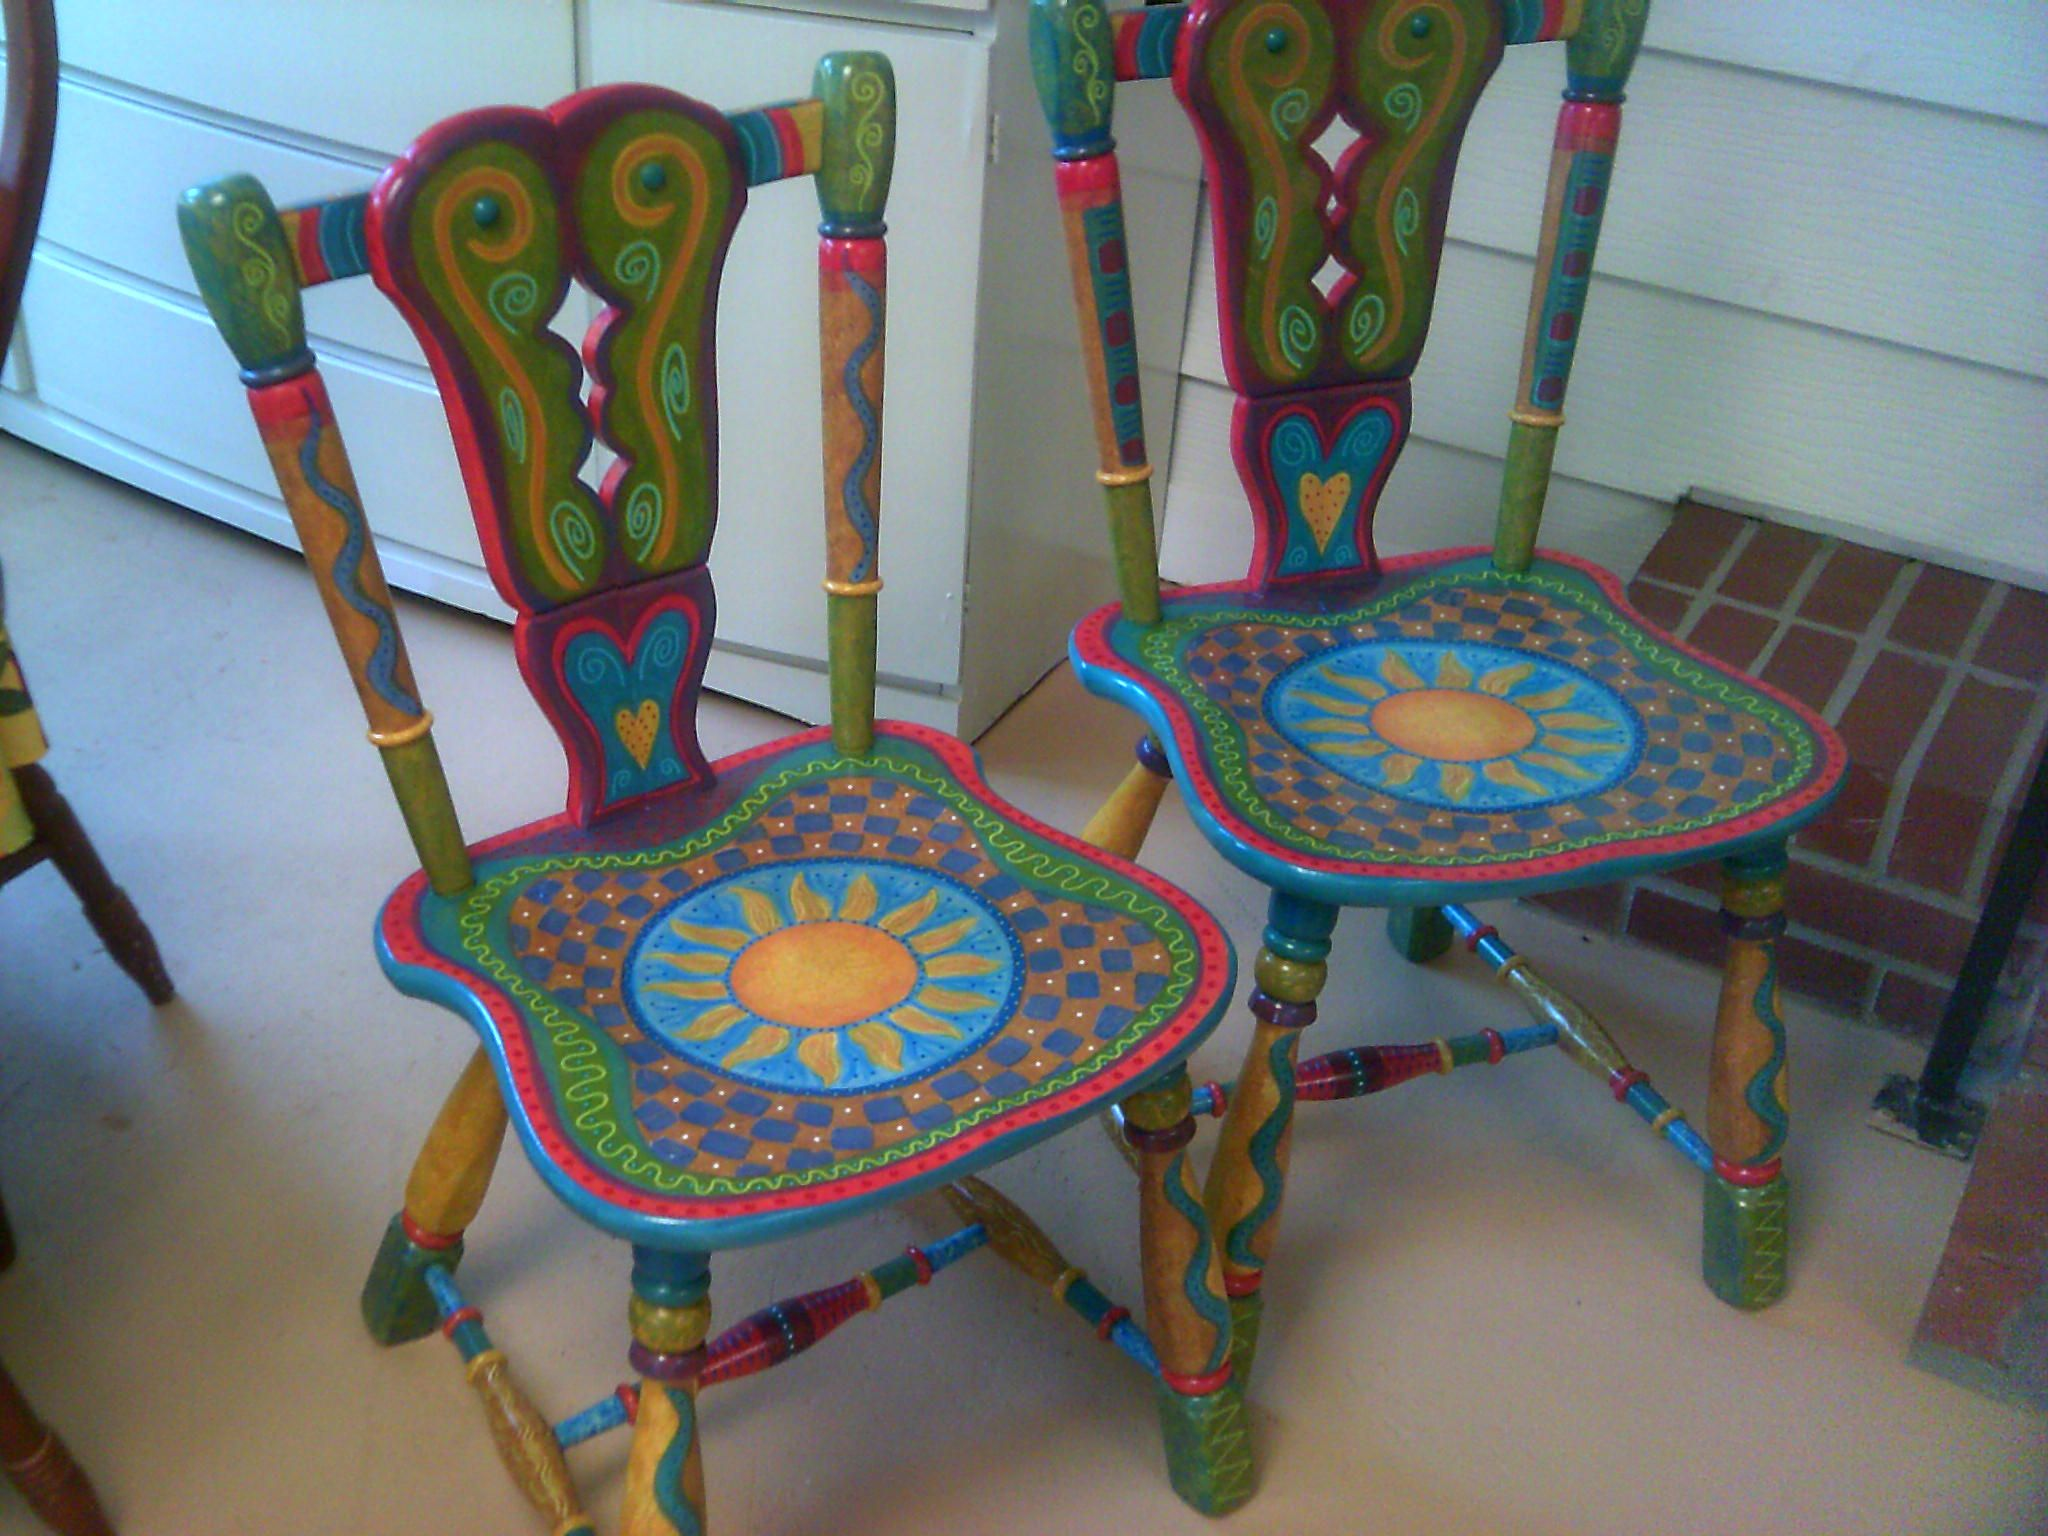 Ideas for hand painted chairs - Whimsical Painted Furniture Google Search Painted Kids Chairswhimsical Painted Furniturehand